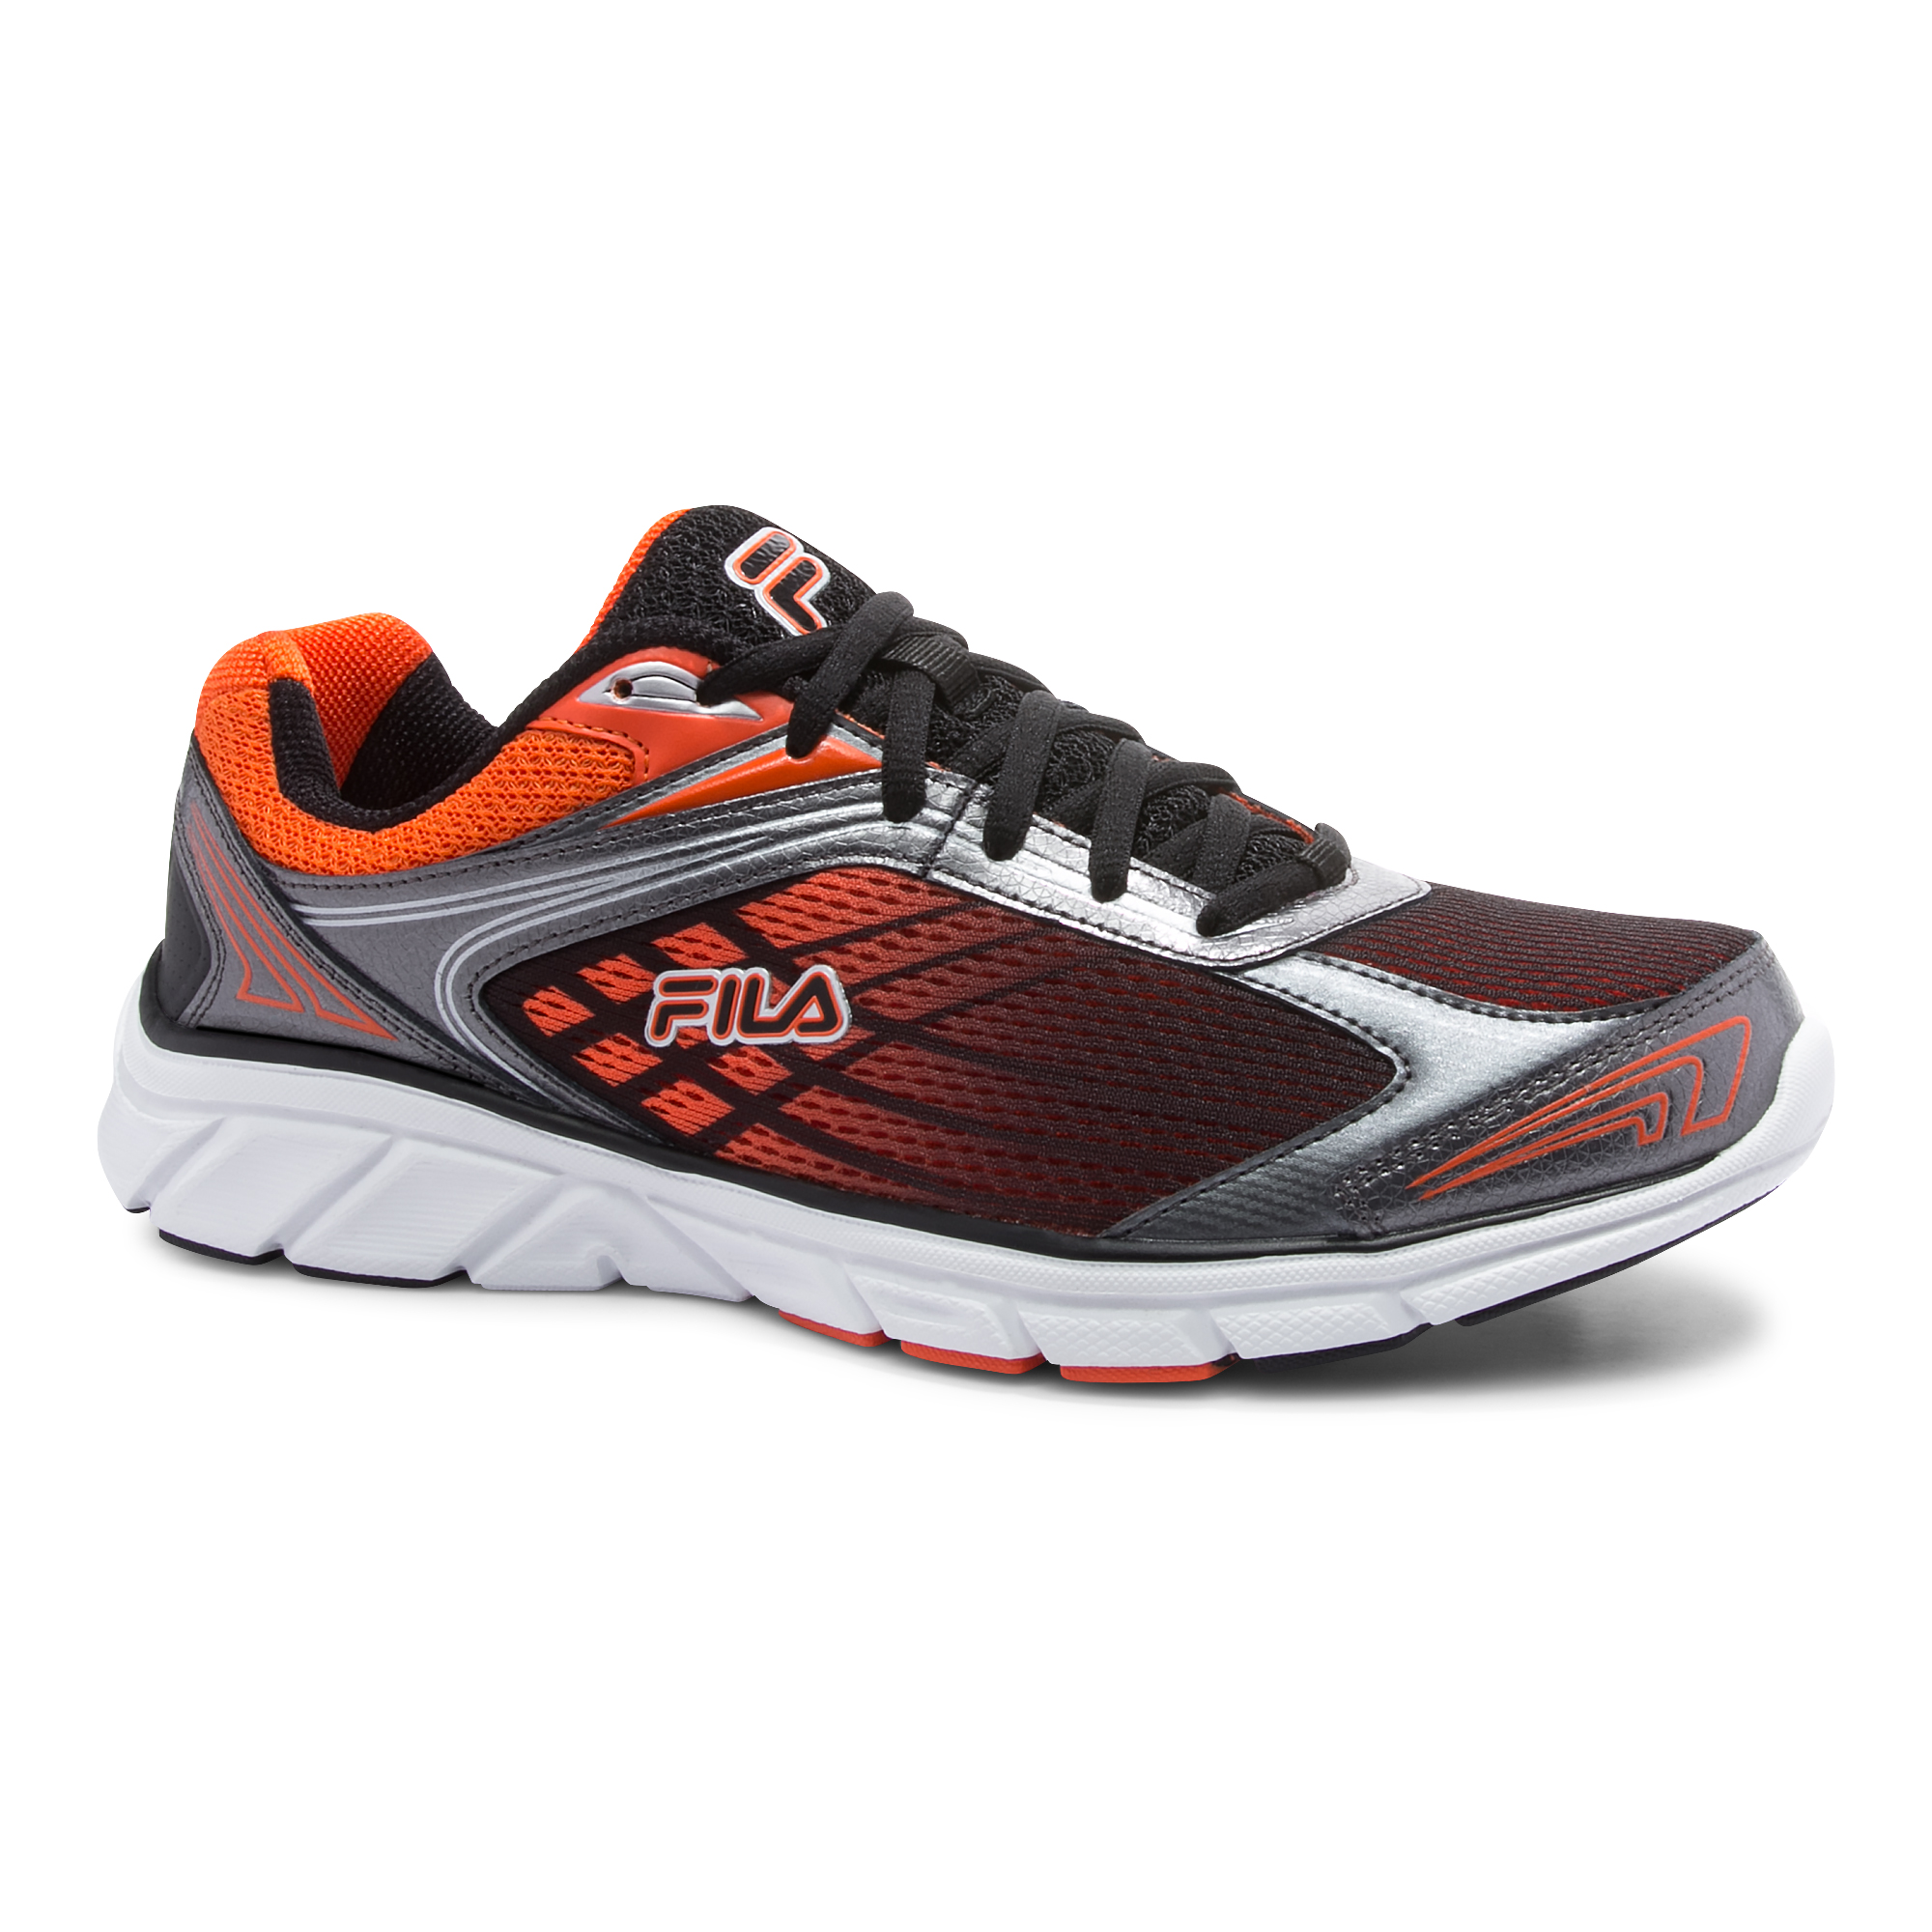 Fila Memory Training Shoes Men